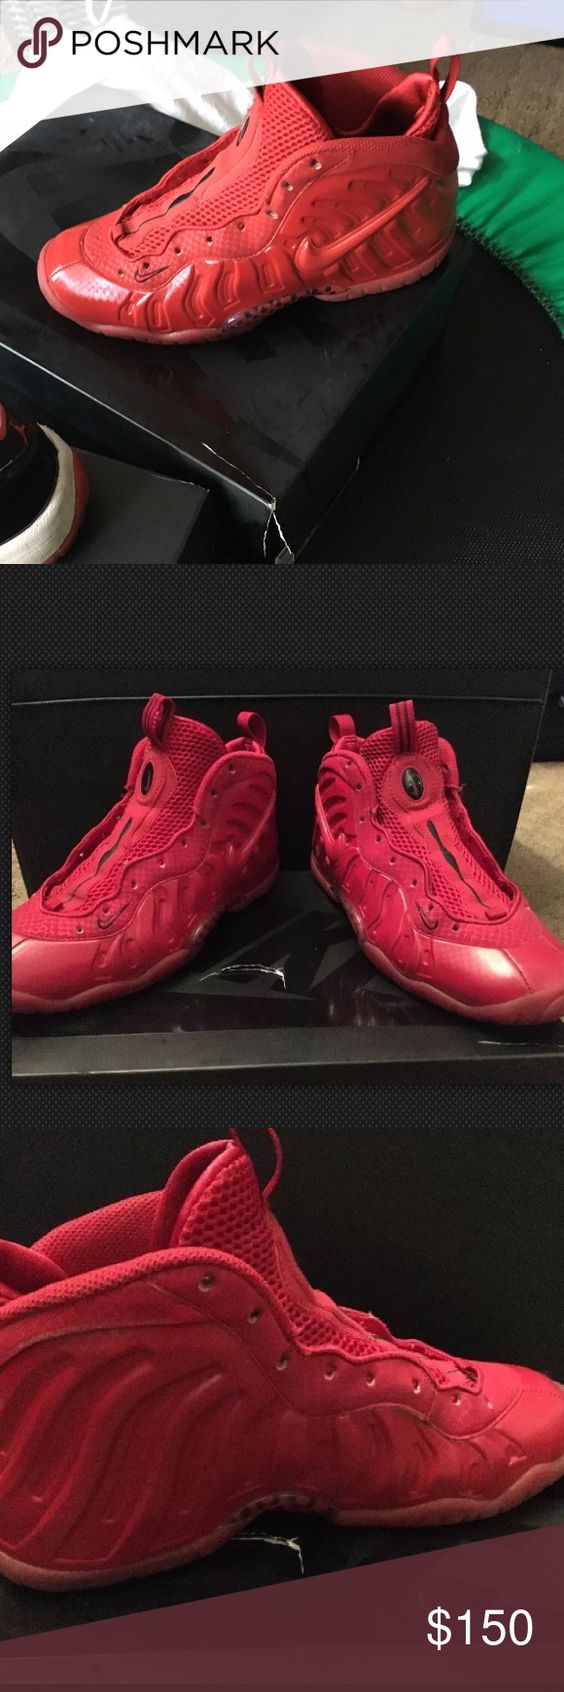 2015 Gym Red Foamposites Pre-Owned THESE ARE PRE-OWNED 2015 GYM RED FOAMPOSITES SIZE 6Y! Nike Shoes Sneakers